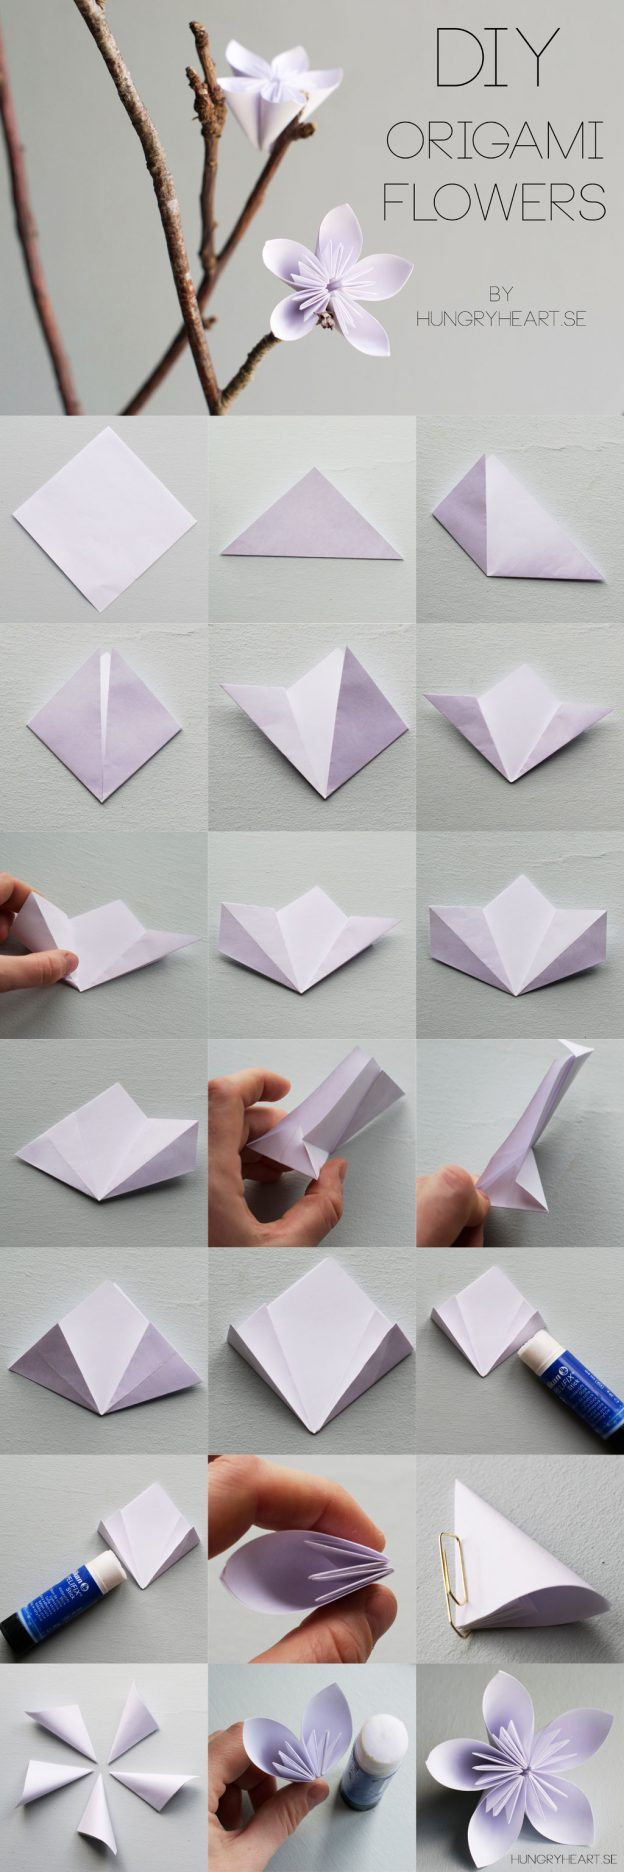 25 best origami ideas on pinterest for How to make easy crafts step by step